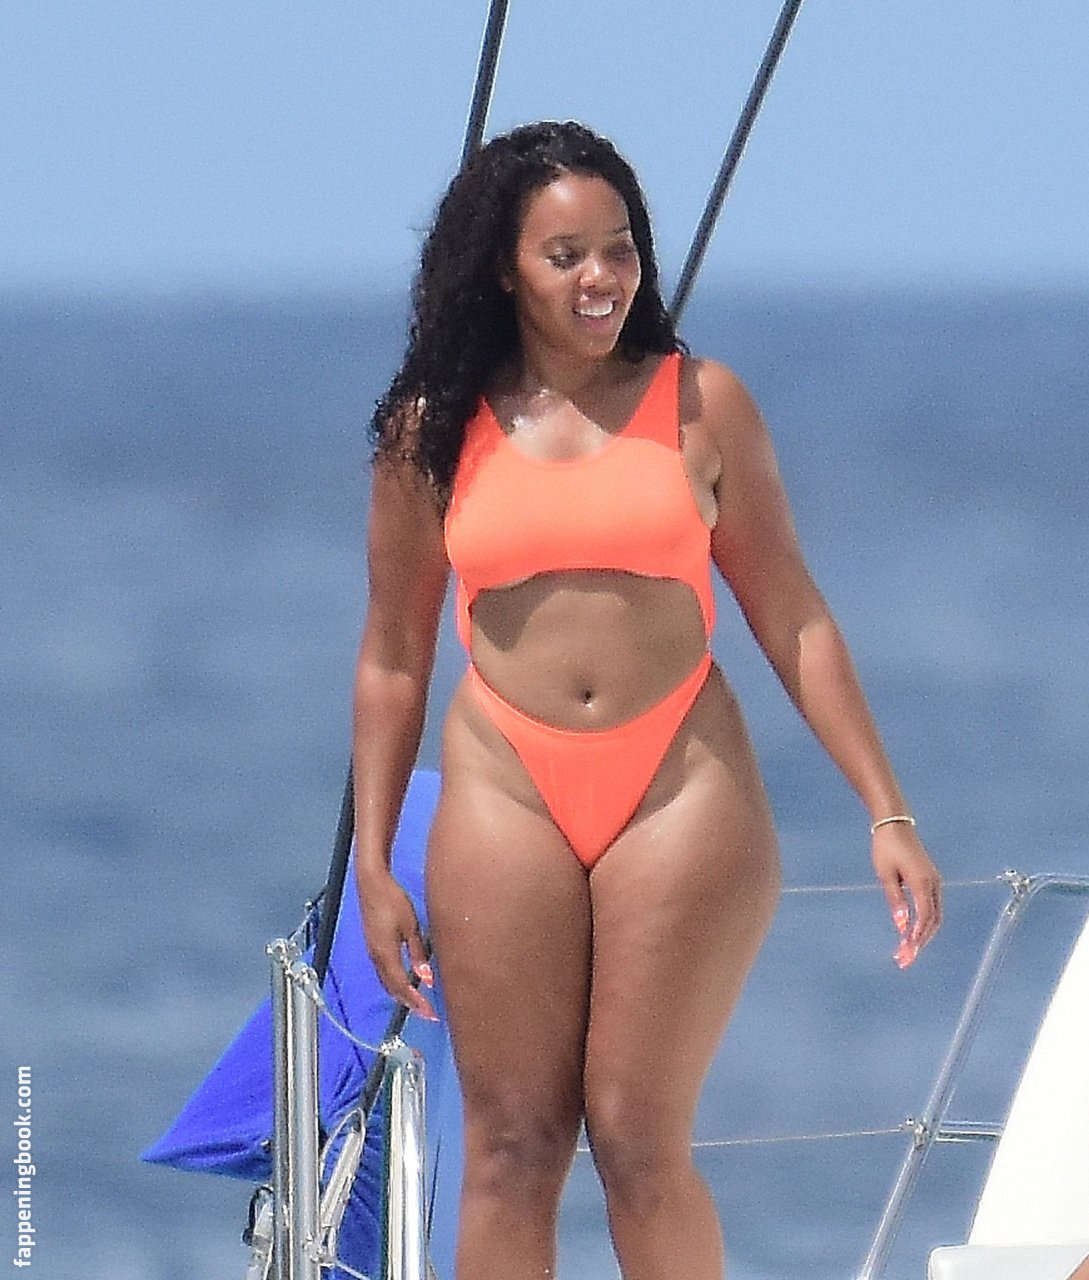 Angela Simmons Nude Pics angela simmons nude, sexy, the fappening, uncensored - photo